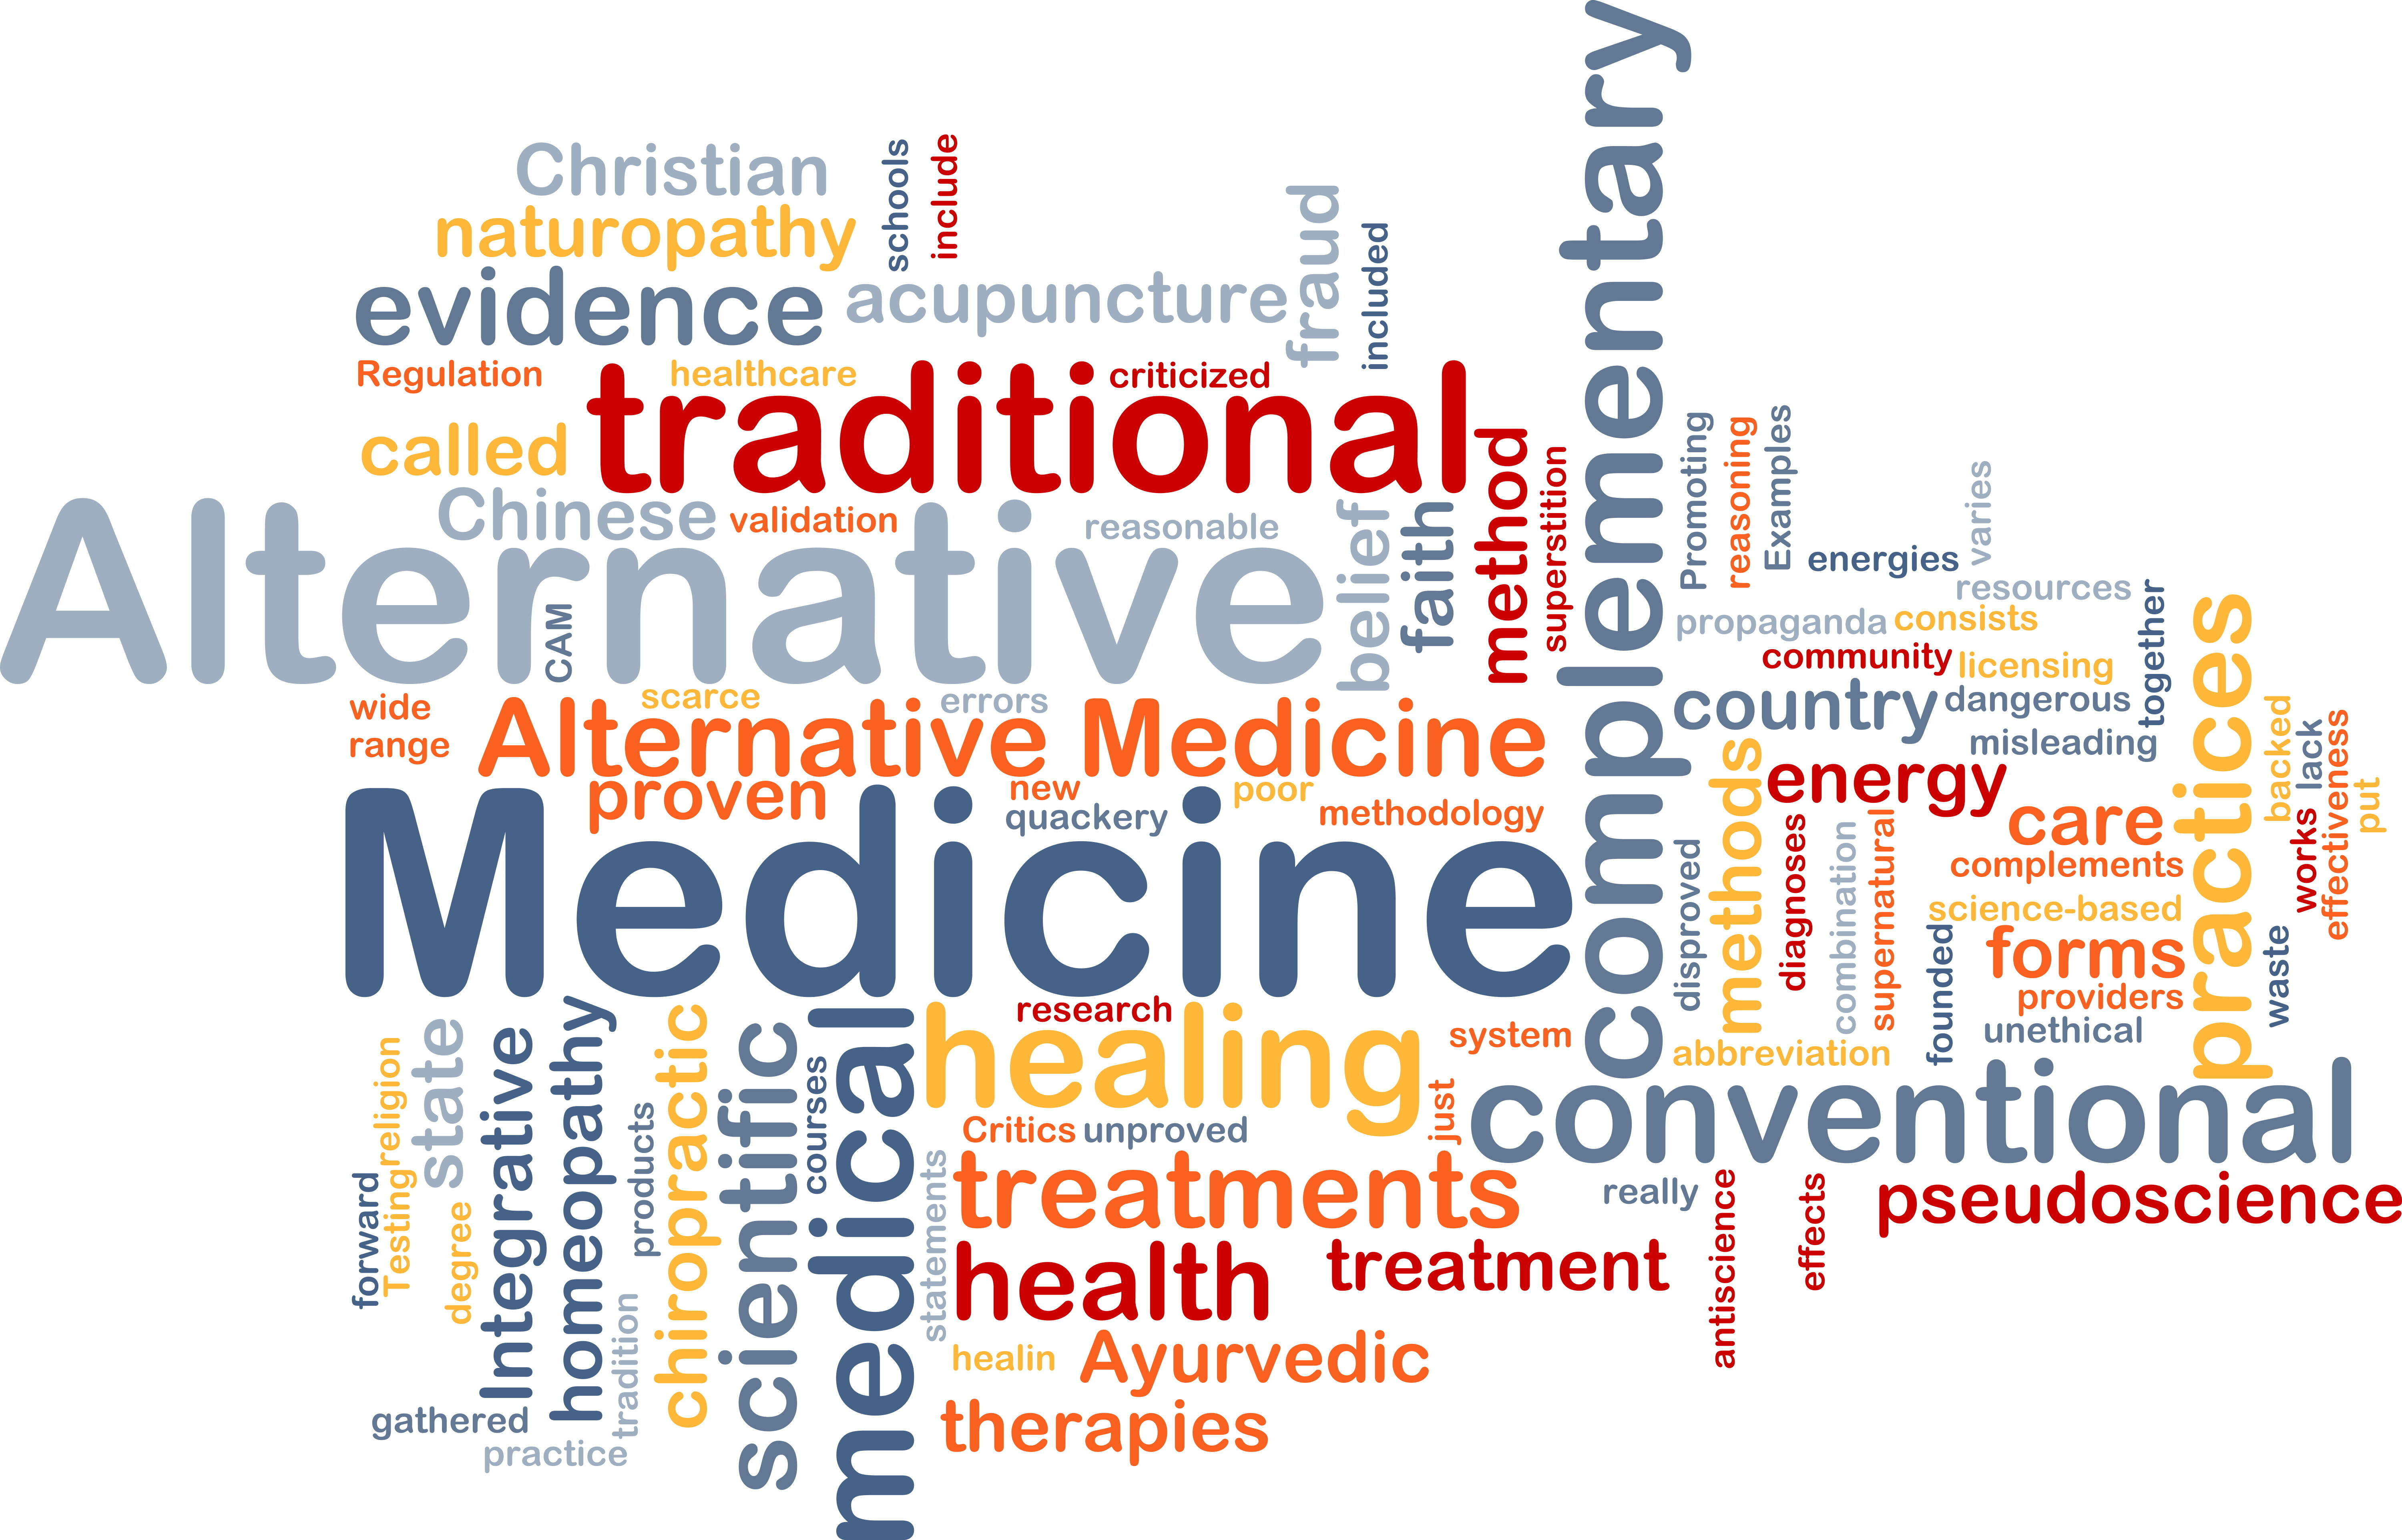 naturopathy whole alternative medical system Dr savahn rosinbum offers patients the chance to choose a blend of conventional and alternative healthcare under the guidance of a caring physician naturopathic medicine gives time and attention to the whole person - body, mind, and spirit - in order to treat illness and foster vitality.